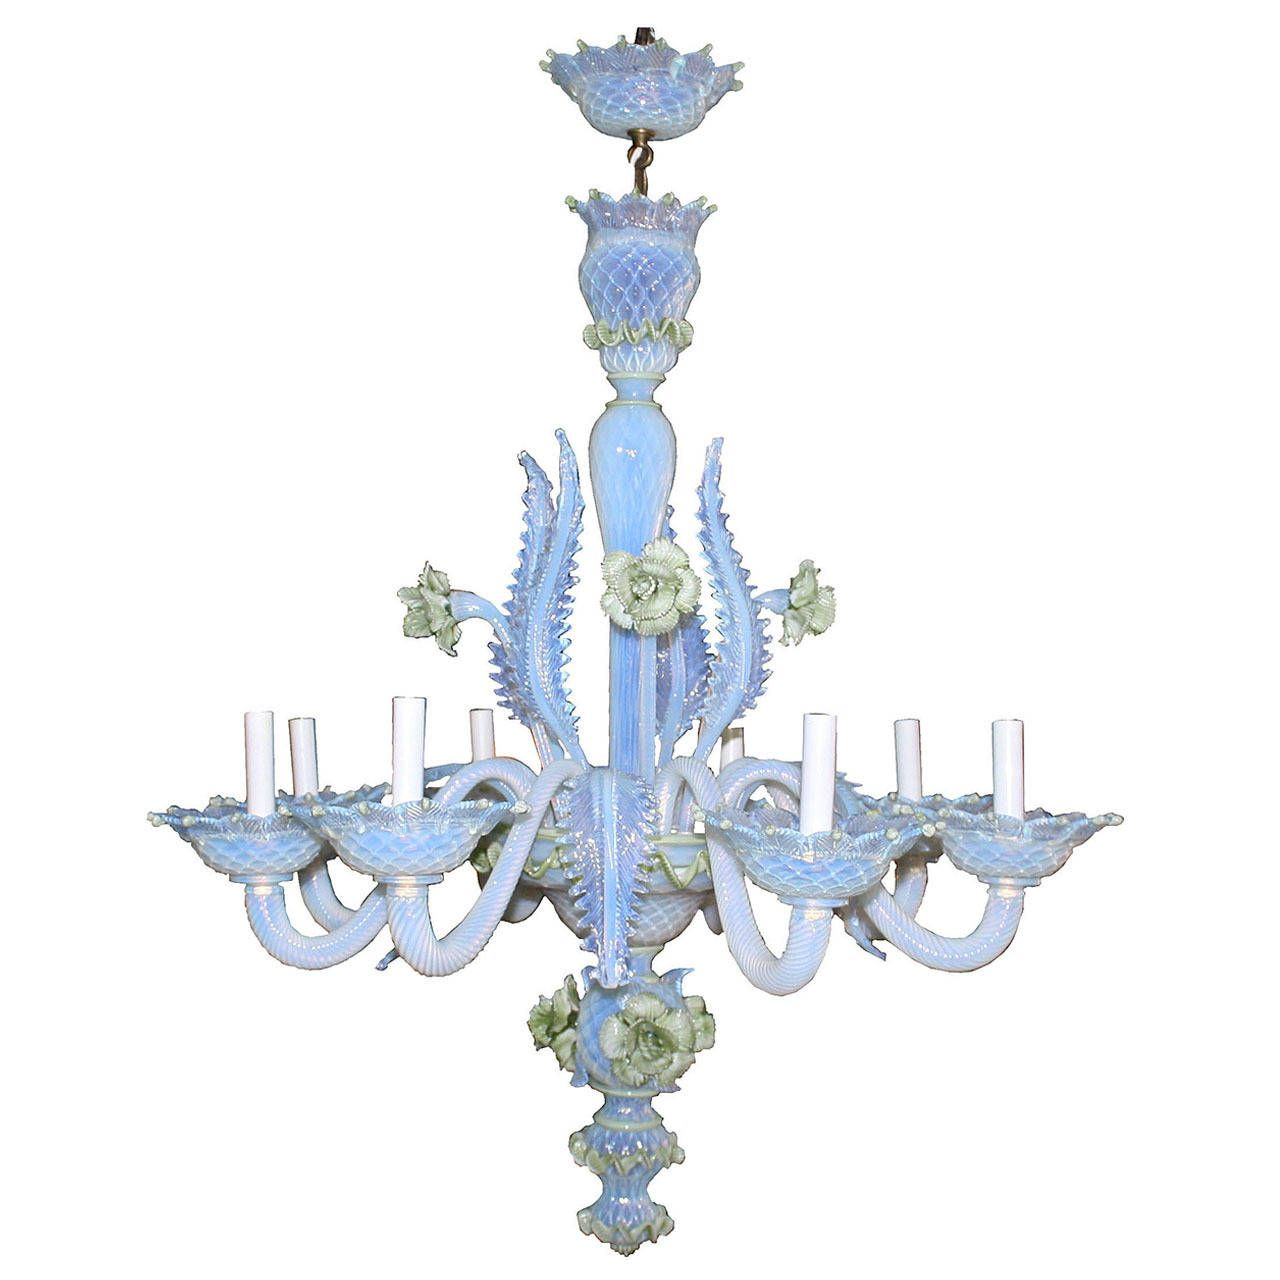 19th century murano glass ciocca chandelier murano glass 19th century murano glass ciocca chandelier mozeypictures Image collections